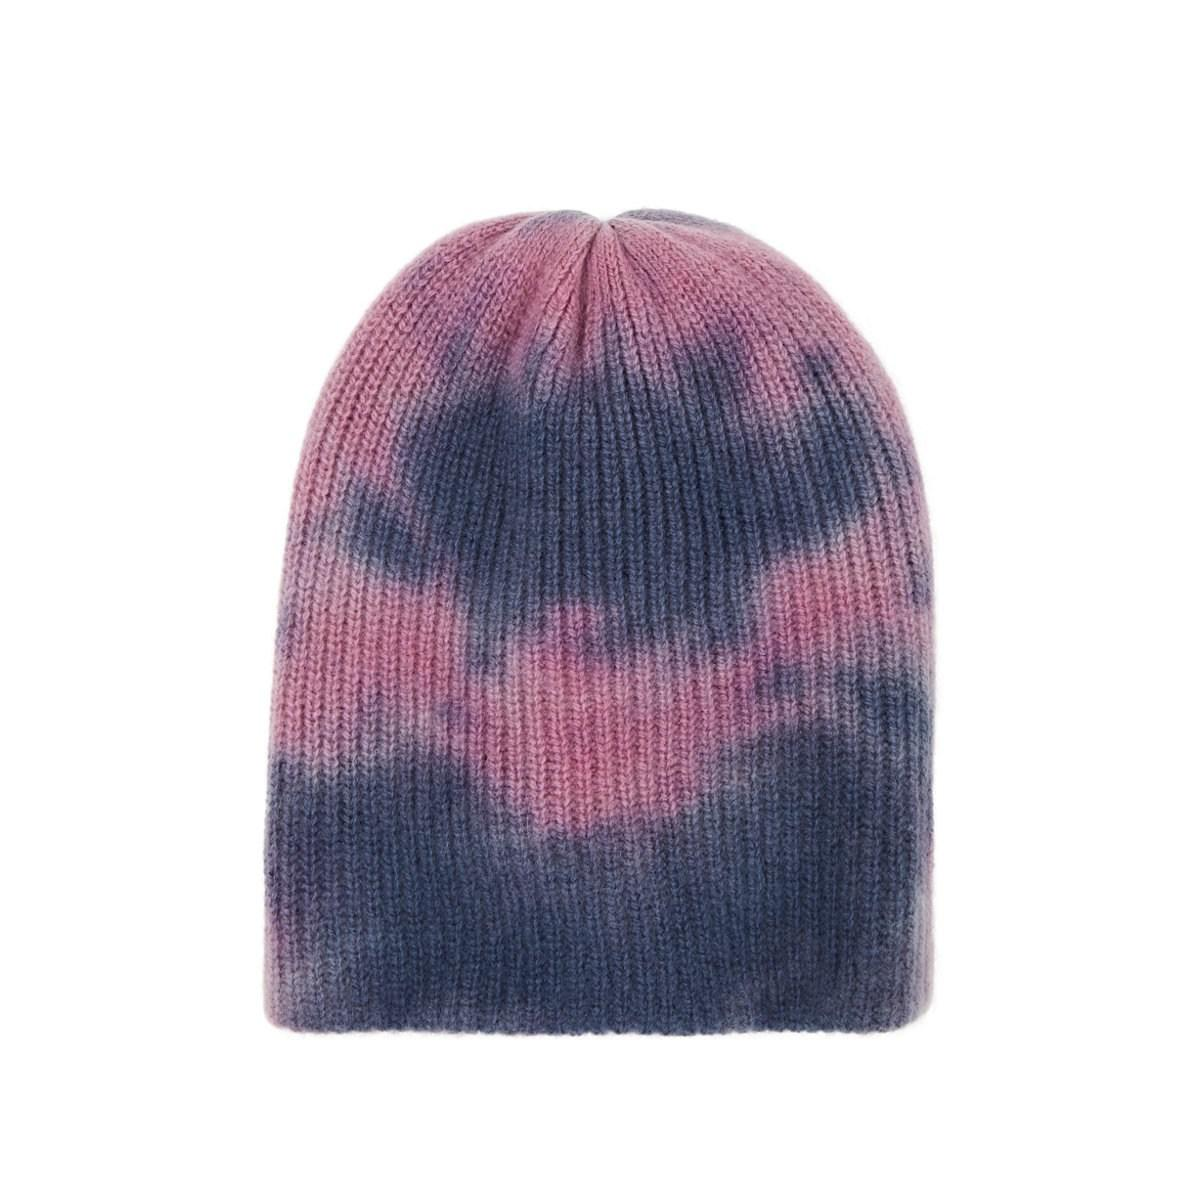 9133a601027 The Elder Statesman Tie-dyed Cashmere Watchman s Cap in Blue - Lyst